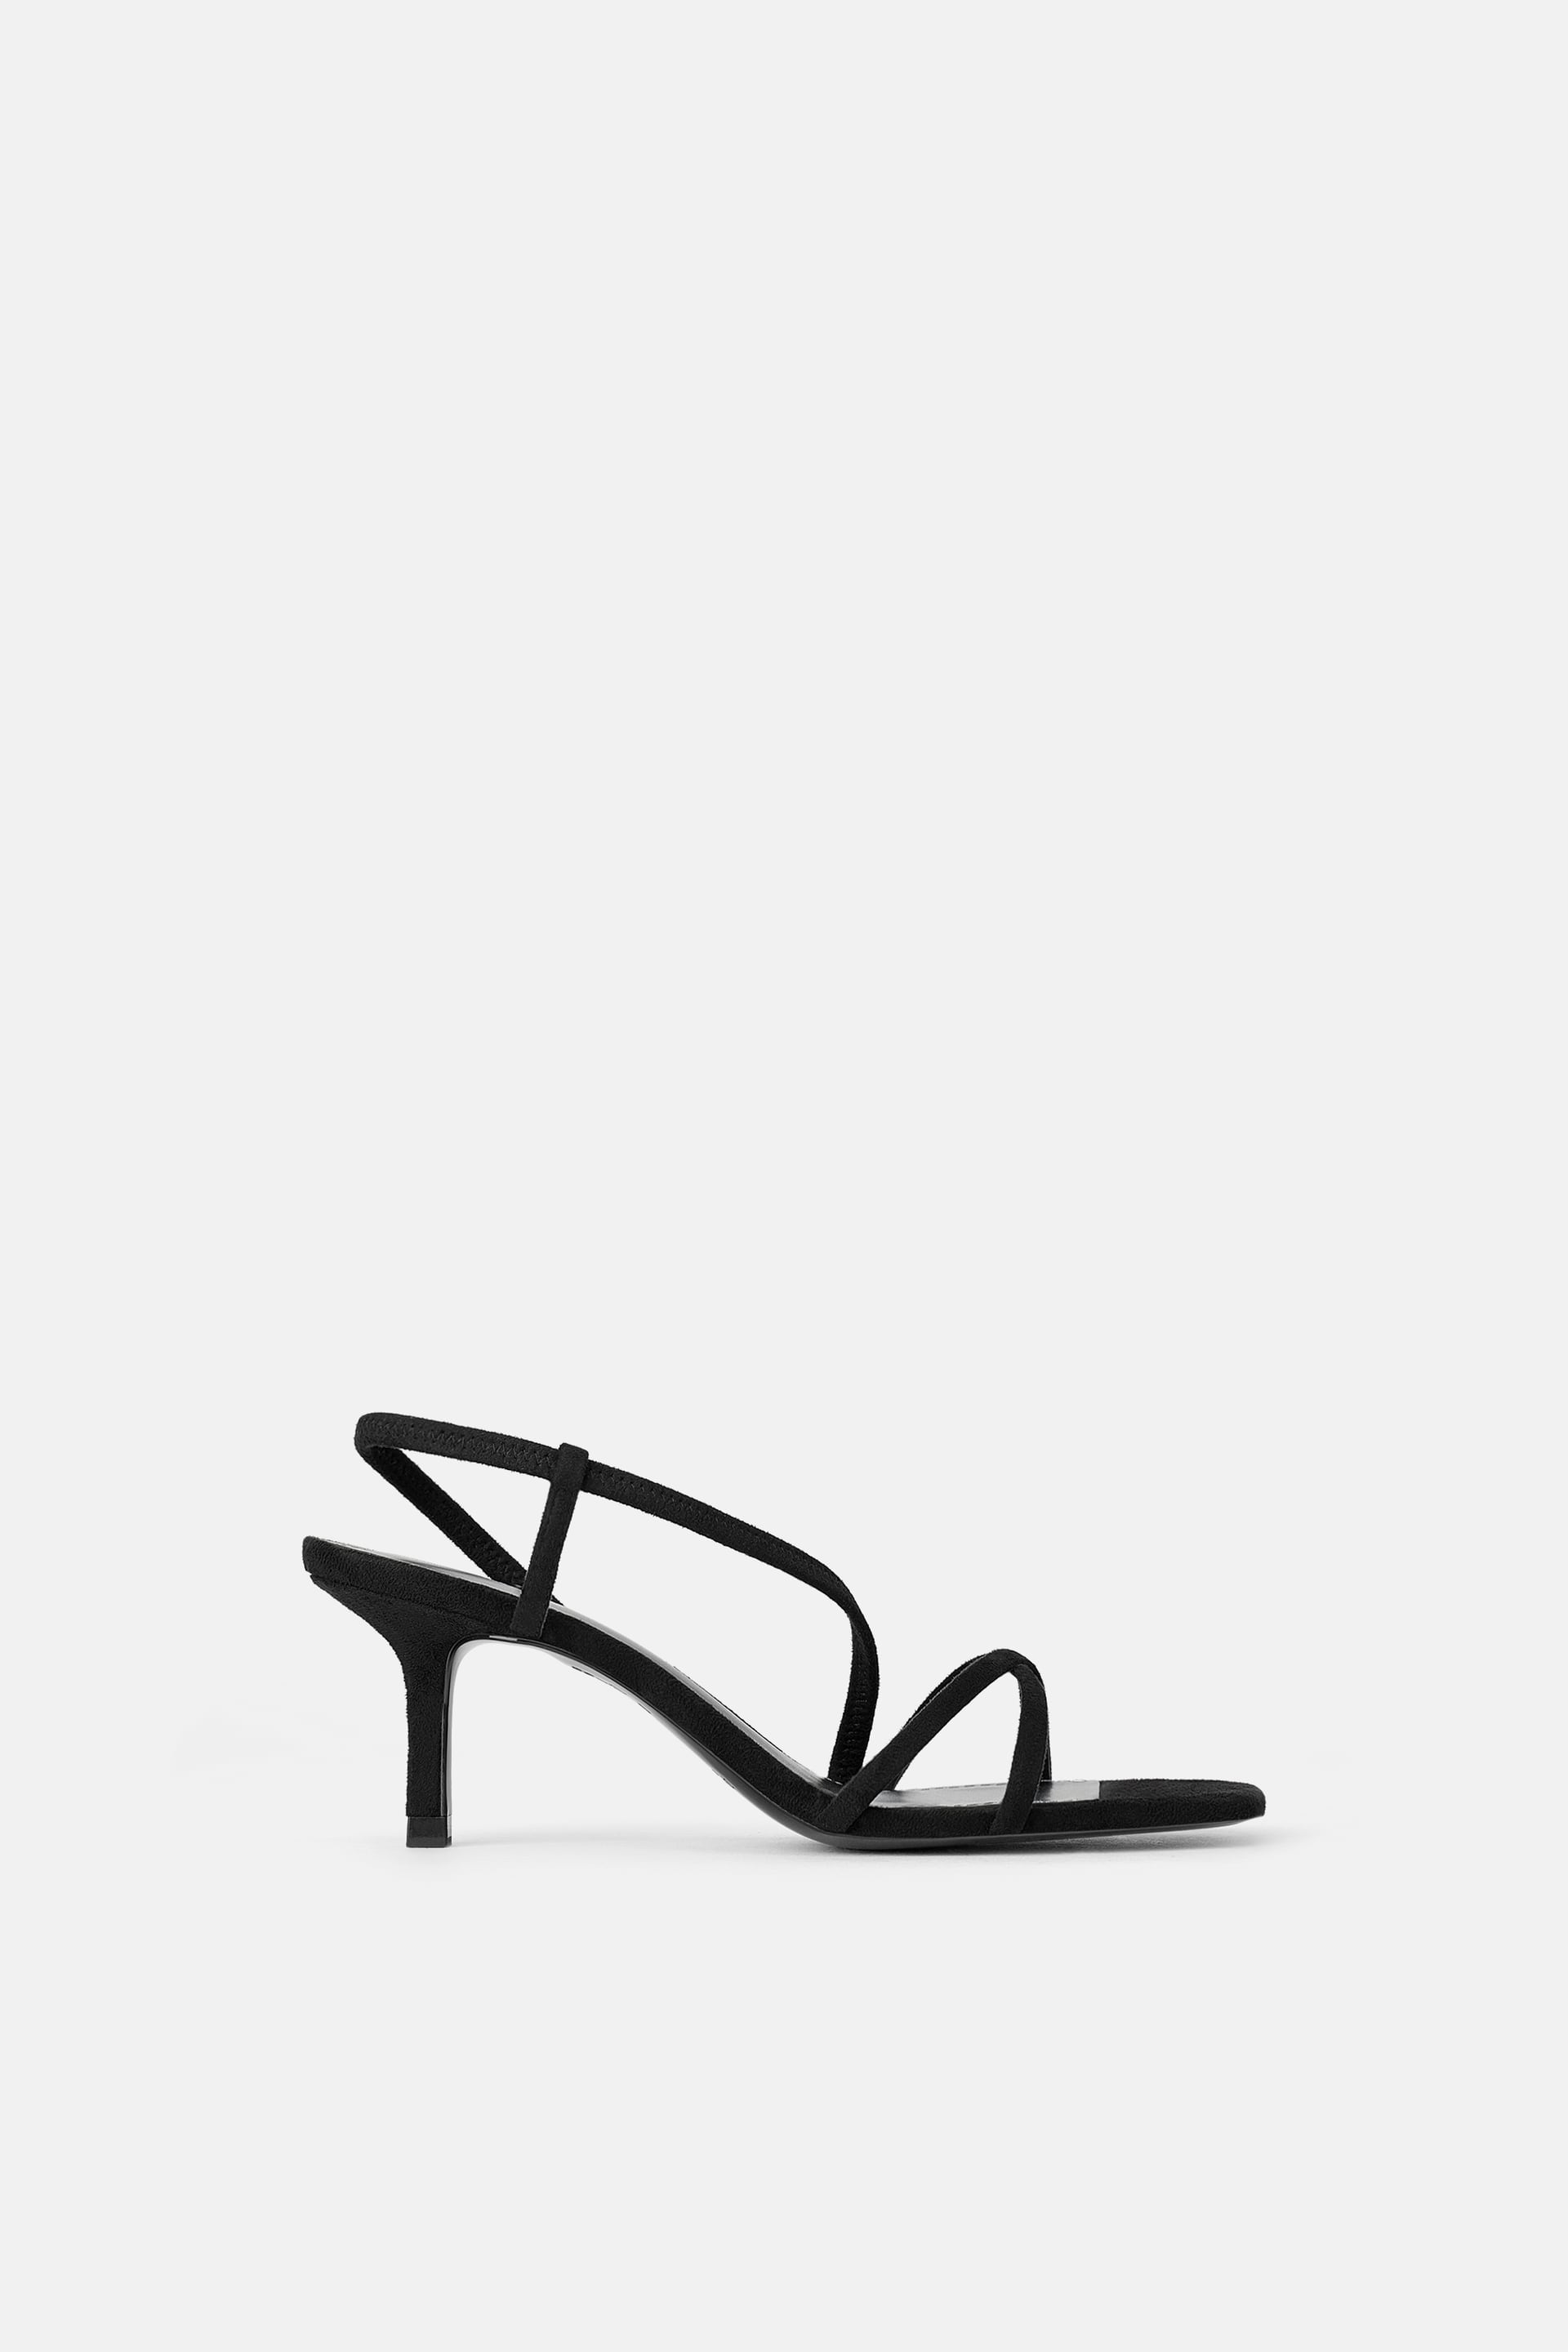 e5cfbf7739 Black Strappy Sandals To Buy In 2019 All Heel Heights